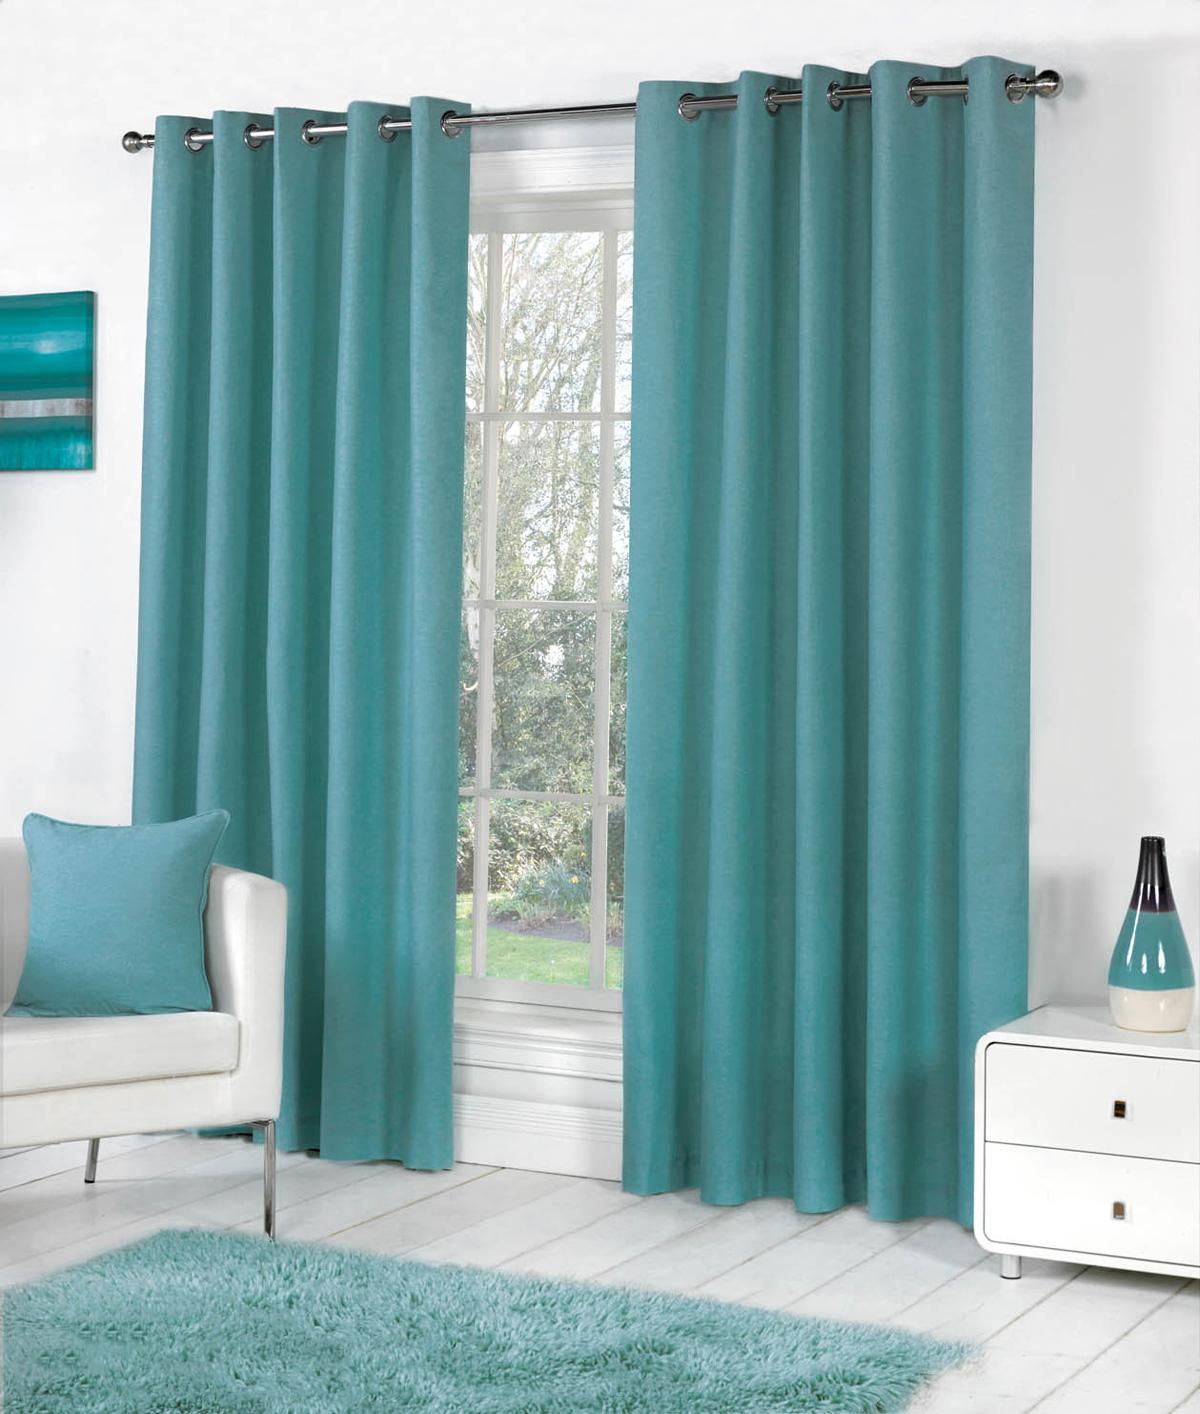 Sorbonne Eyelet Curtains In Teal